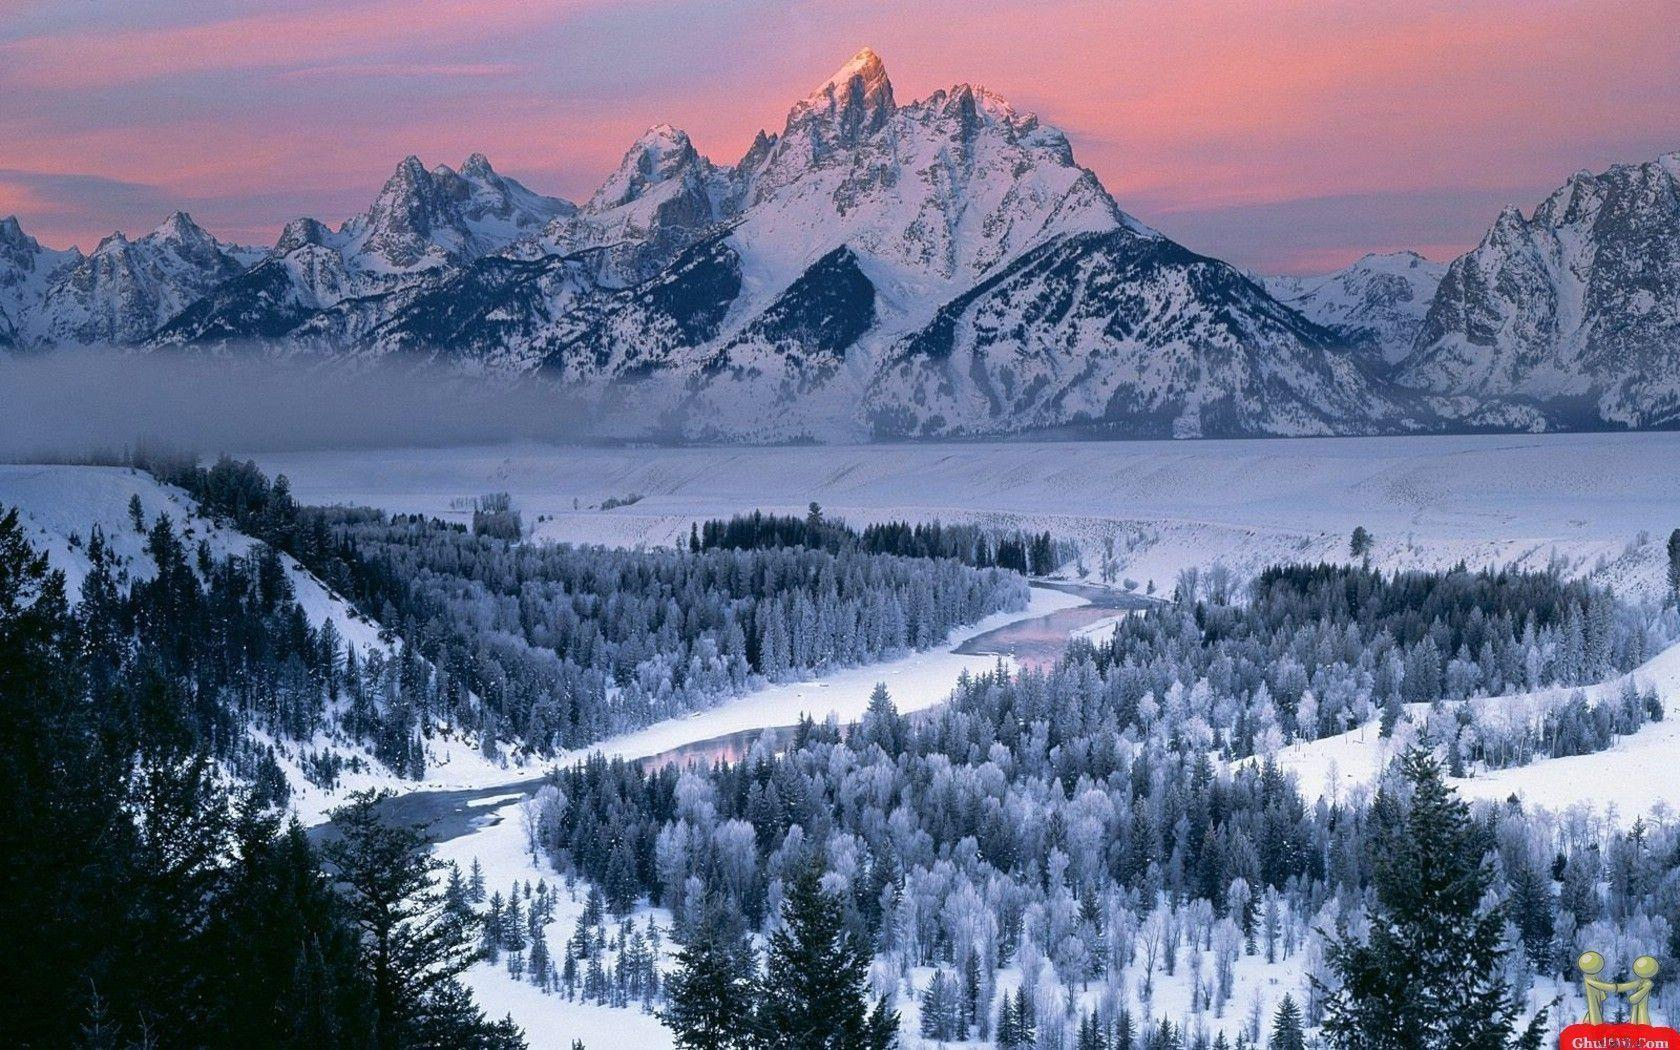 snowy nature wallpaper - photo #40